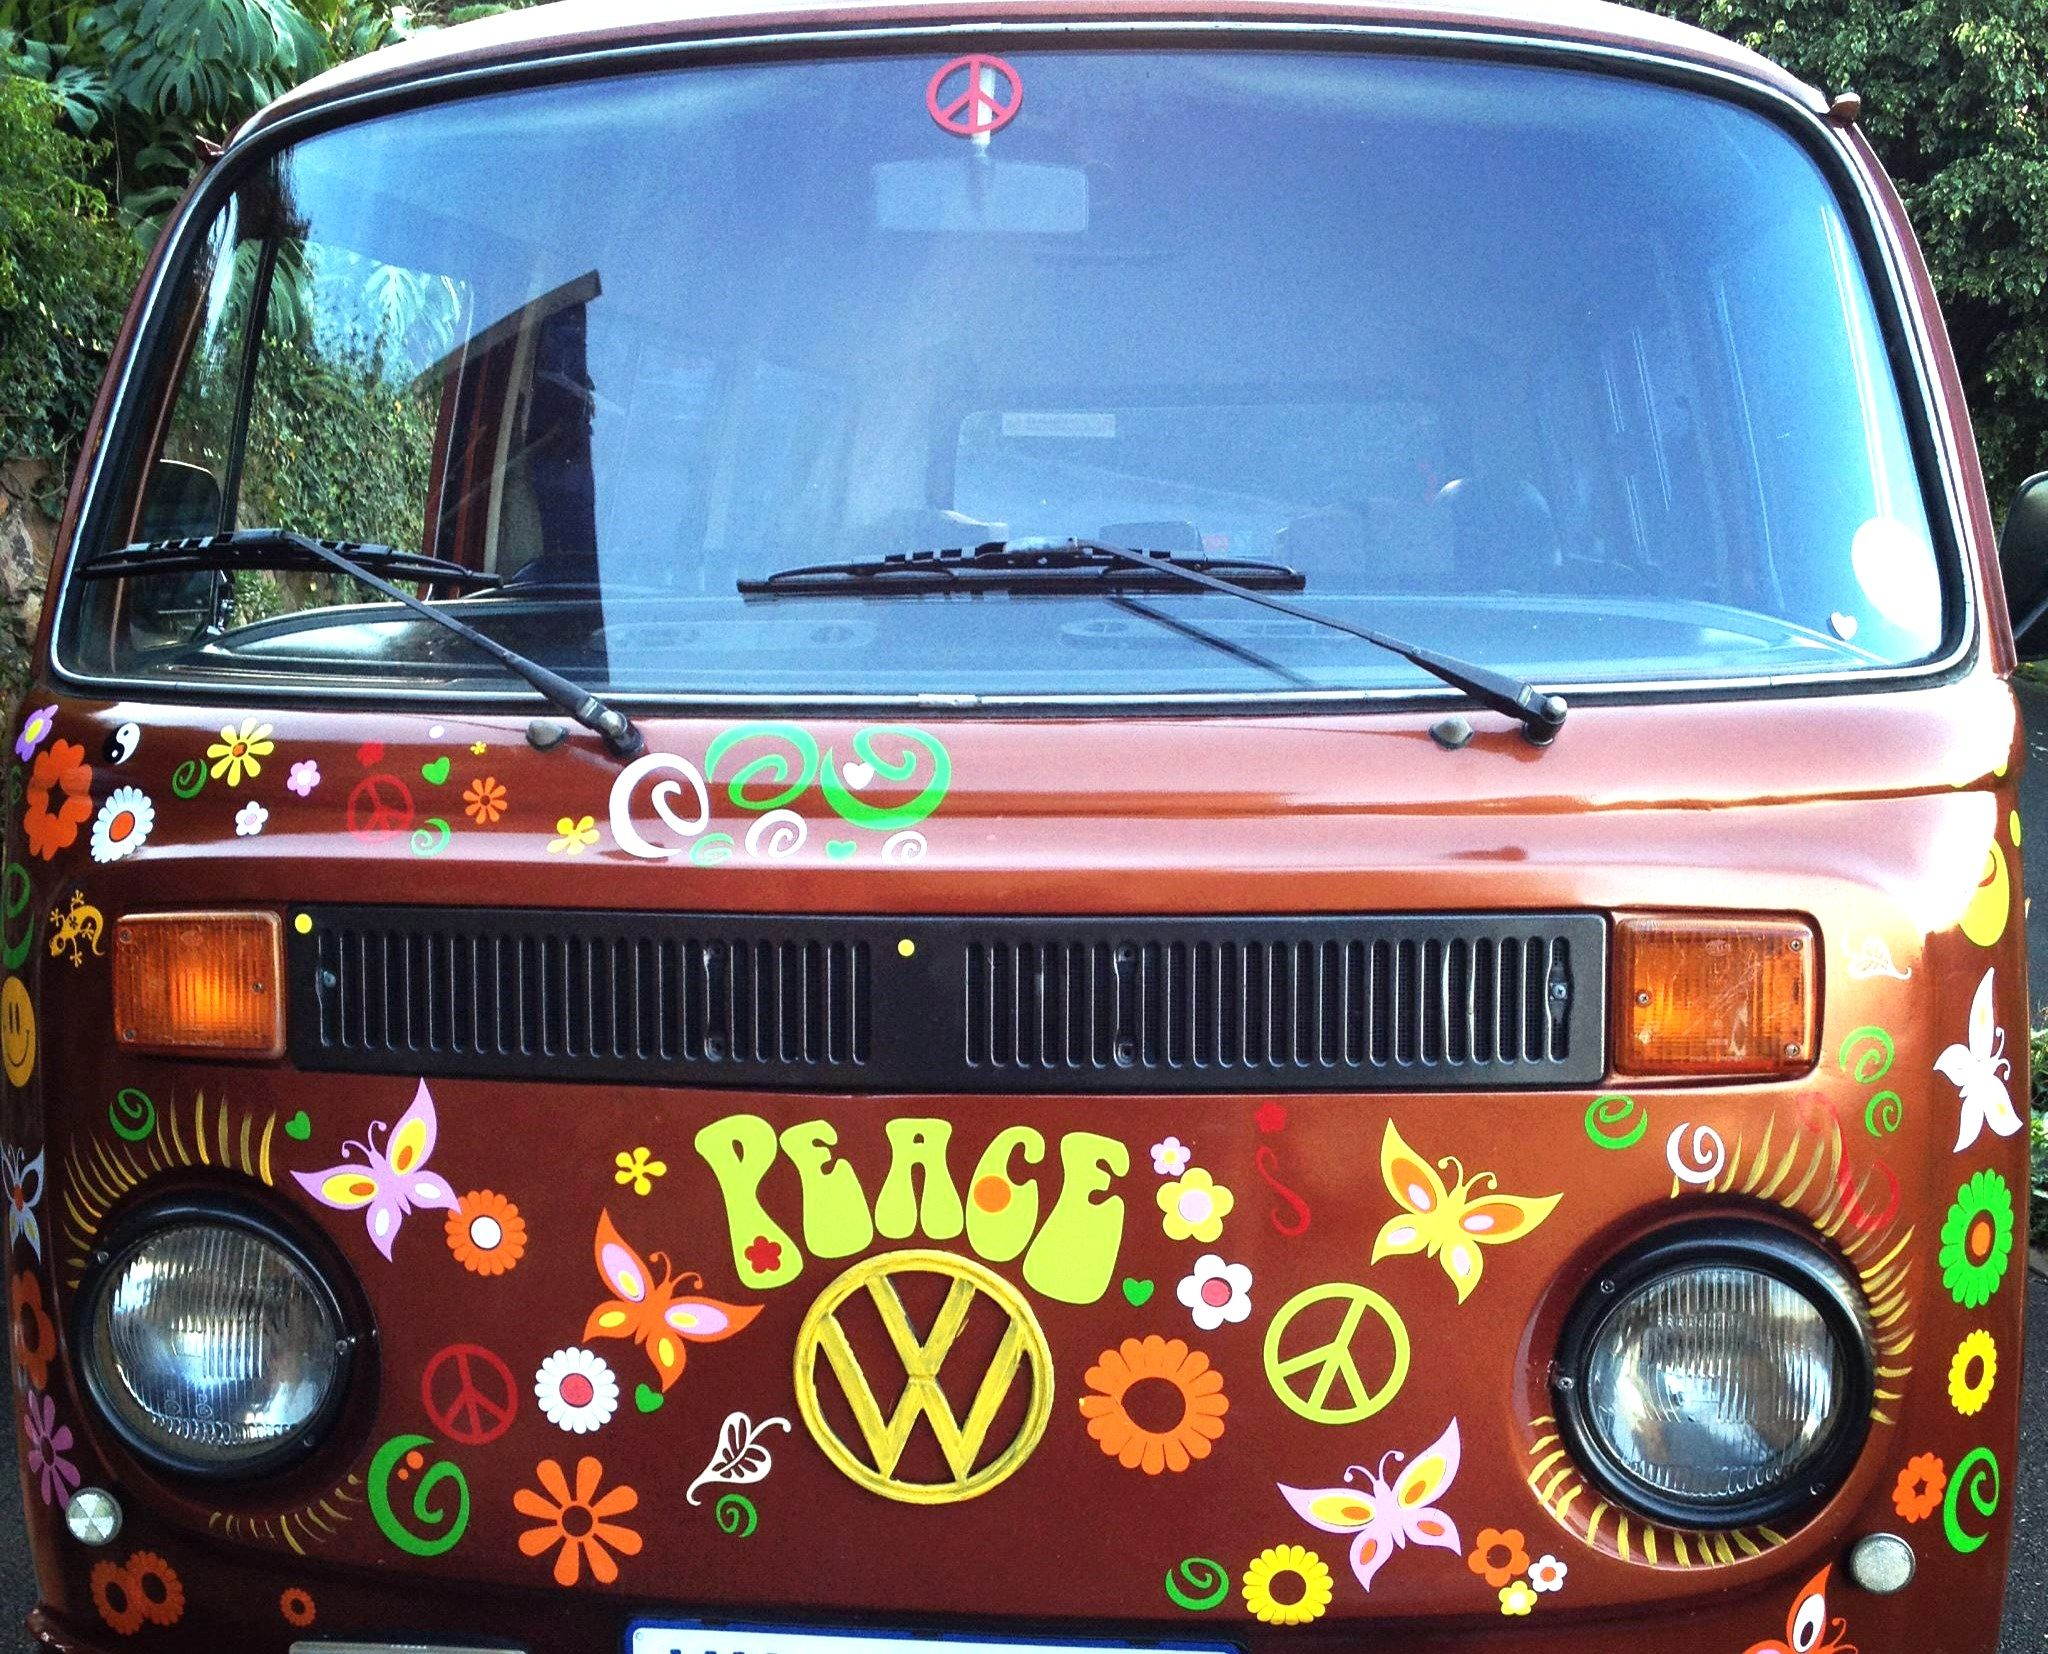 Peace Bus T VW Camper Van Decals Vinyl Decor Flower Car Stickers - Vinyl decals for cars uk